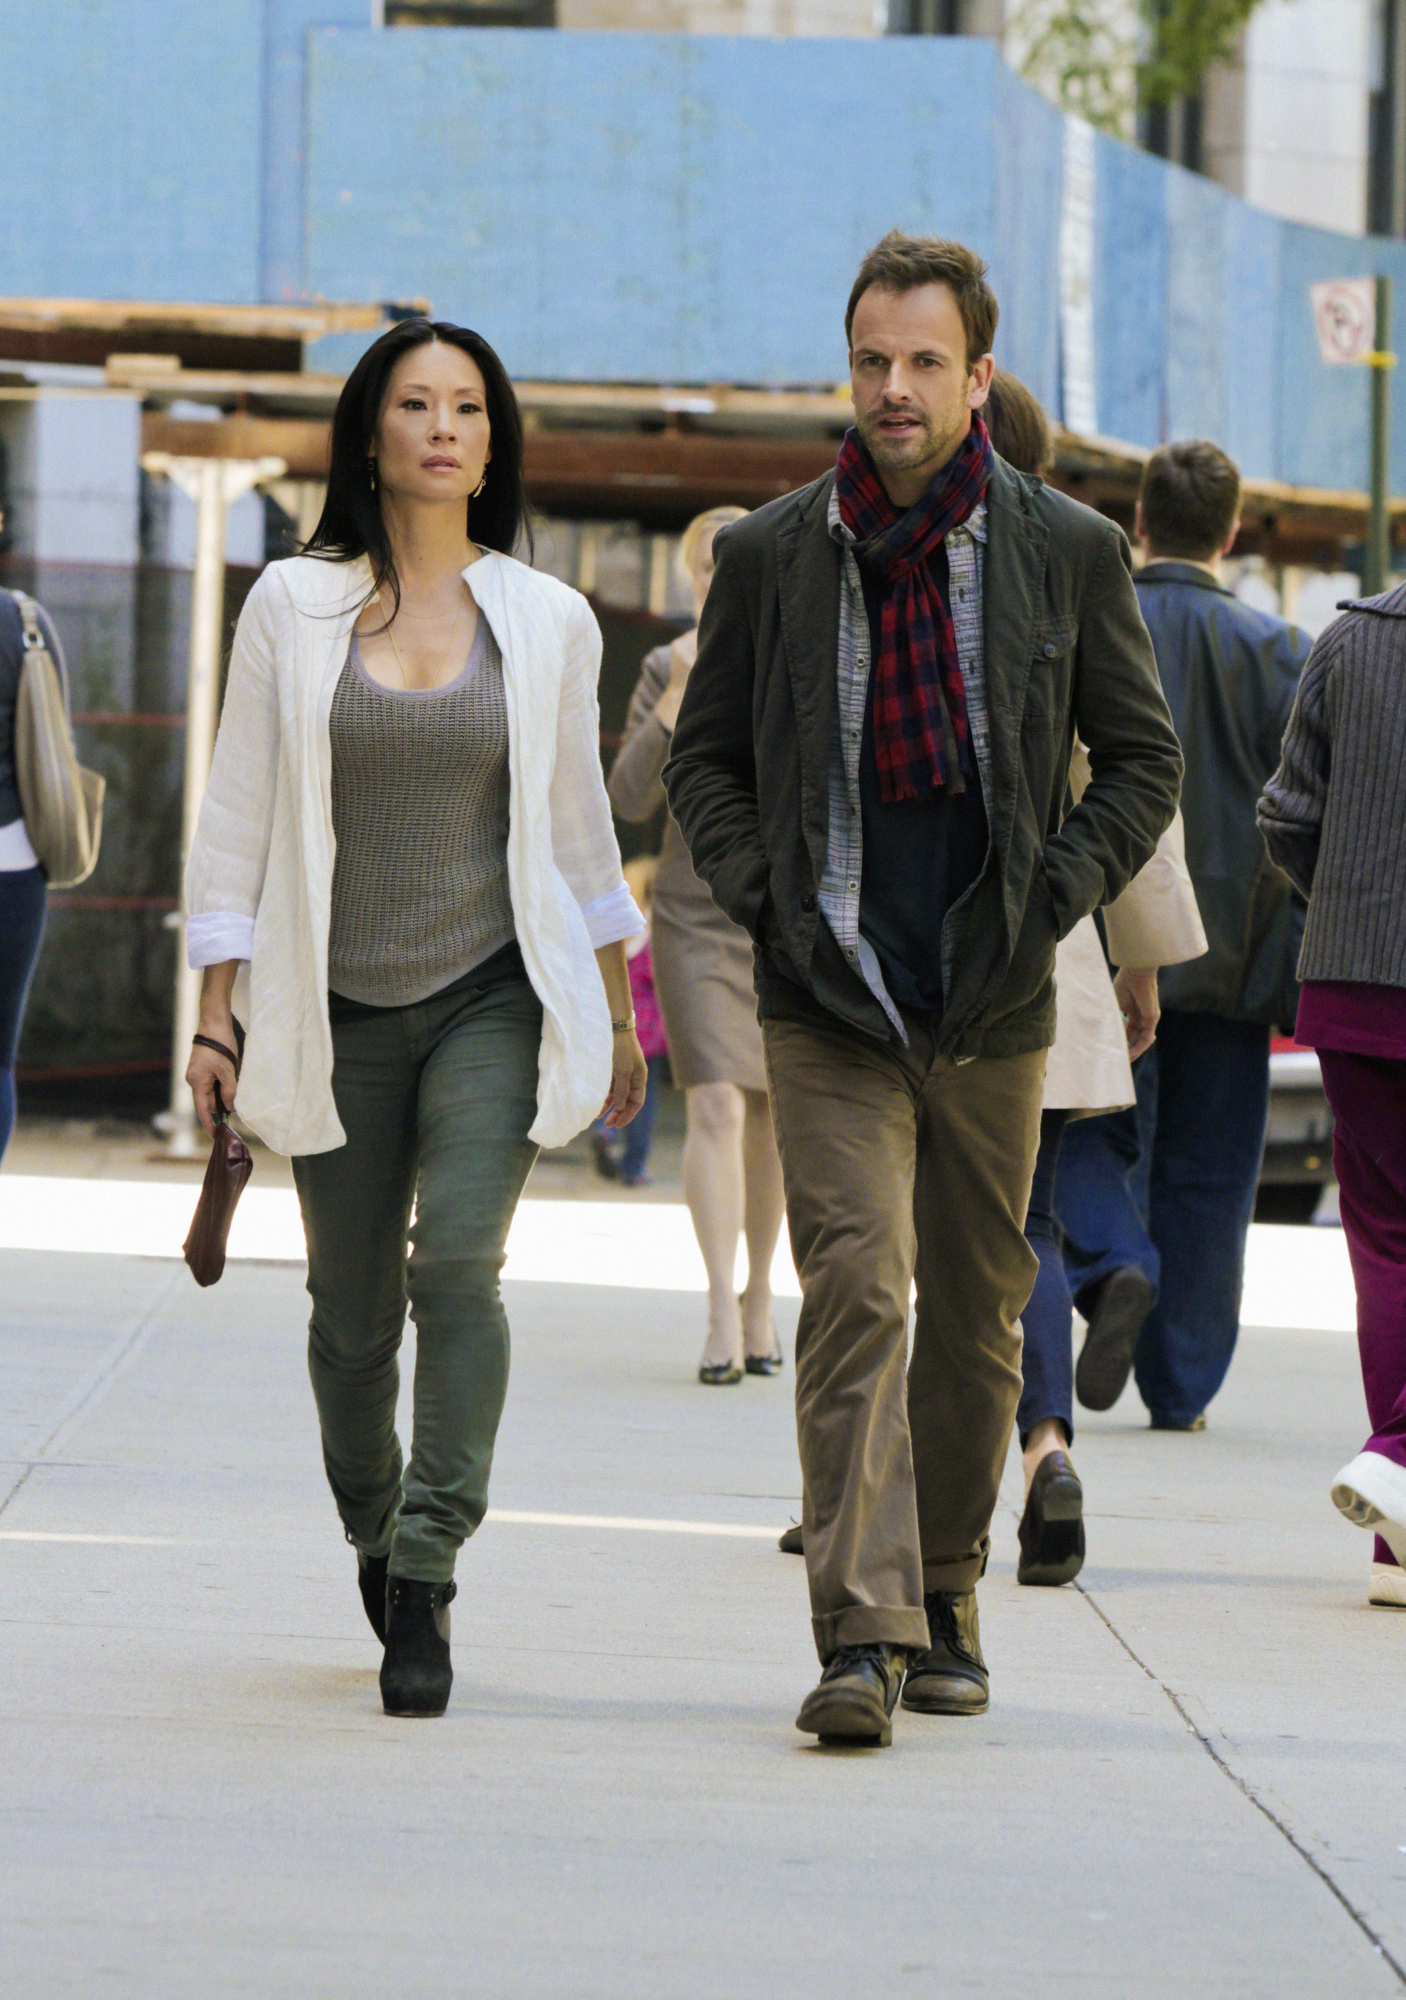 Elementary will return for the 2013/2014 season!